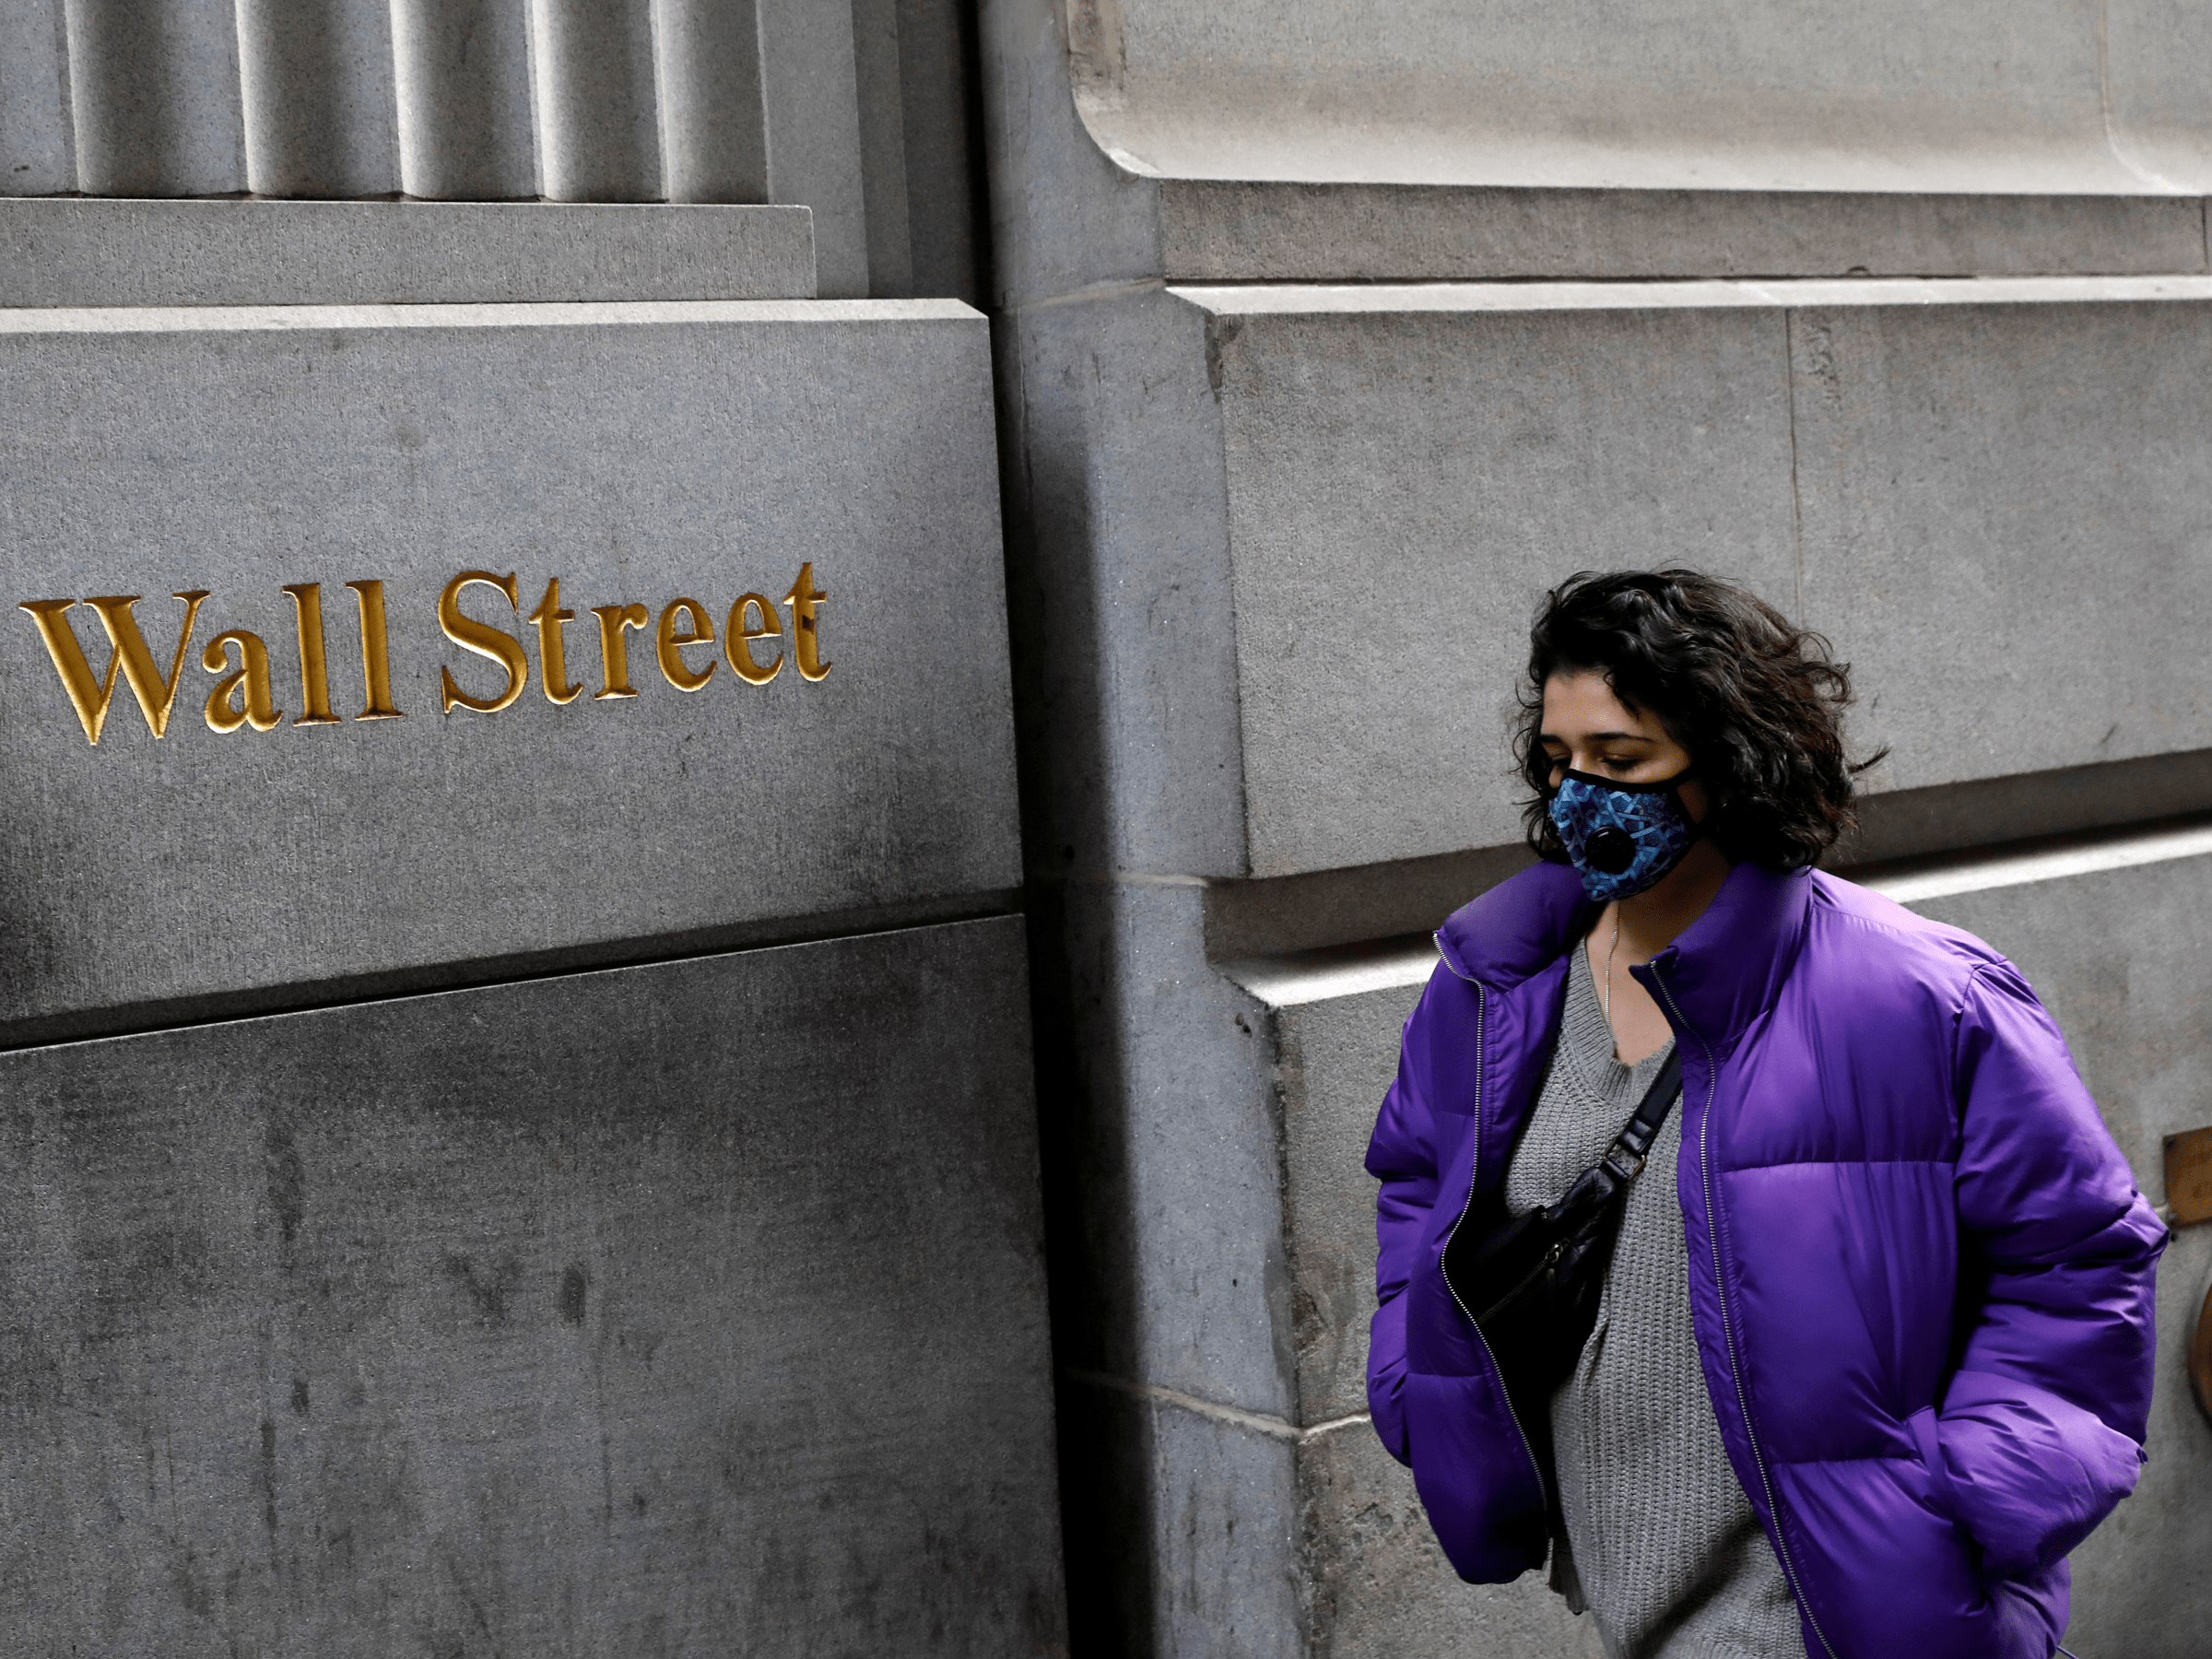 FILE PHOTO: A person wearing a face mask walks along Wall Street after further cases of coronavirus were confirmed in New York City, New York, U.S., March 6, 2020. REUTERS/Andrew Kelly/File Photo